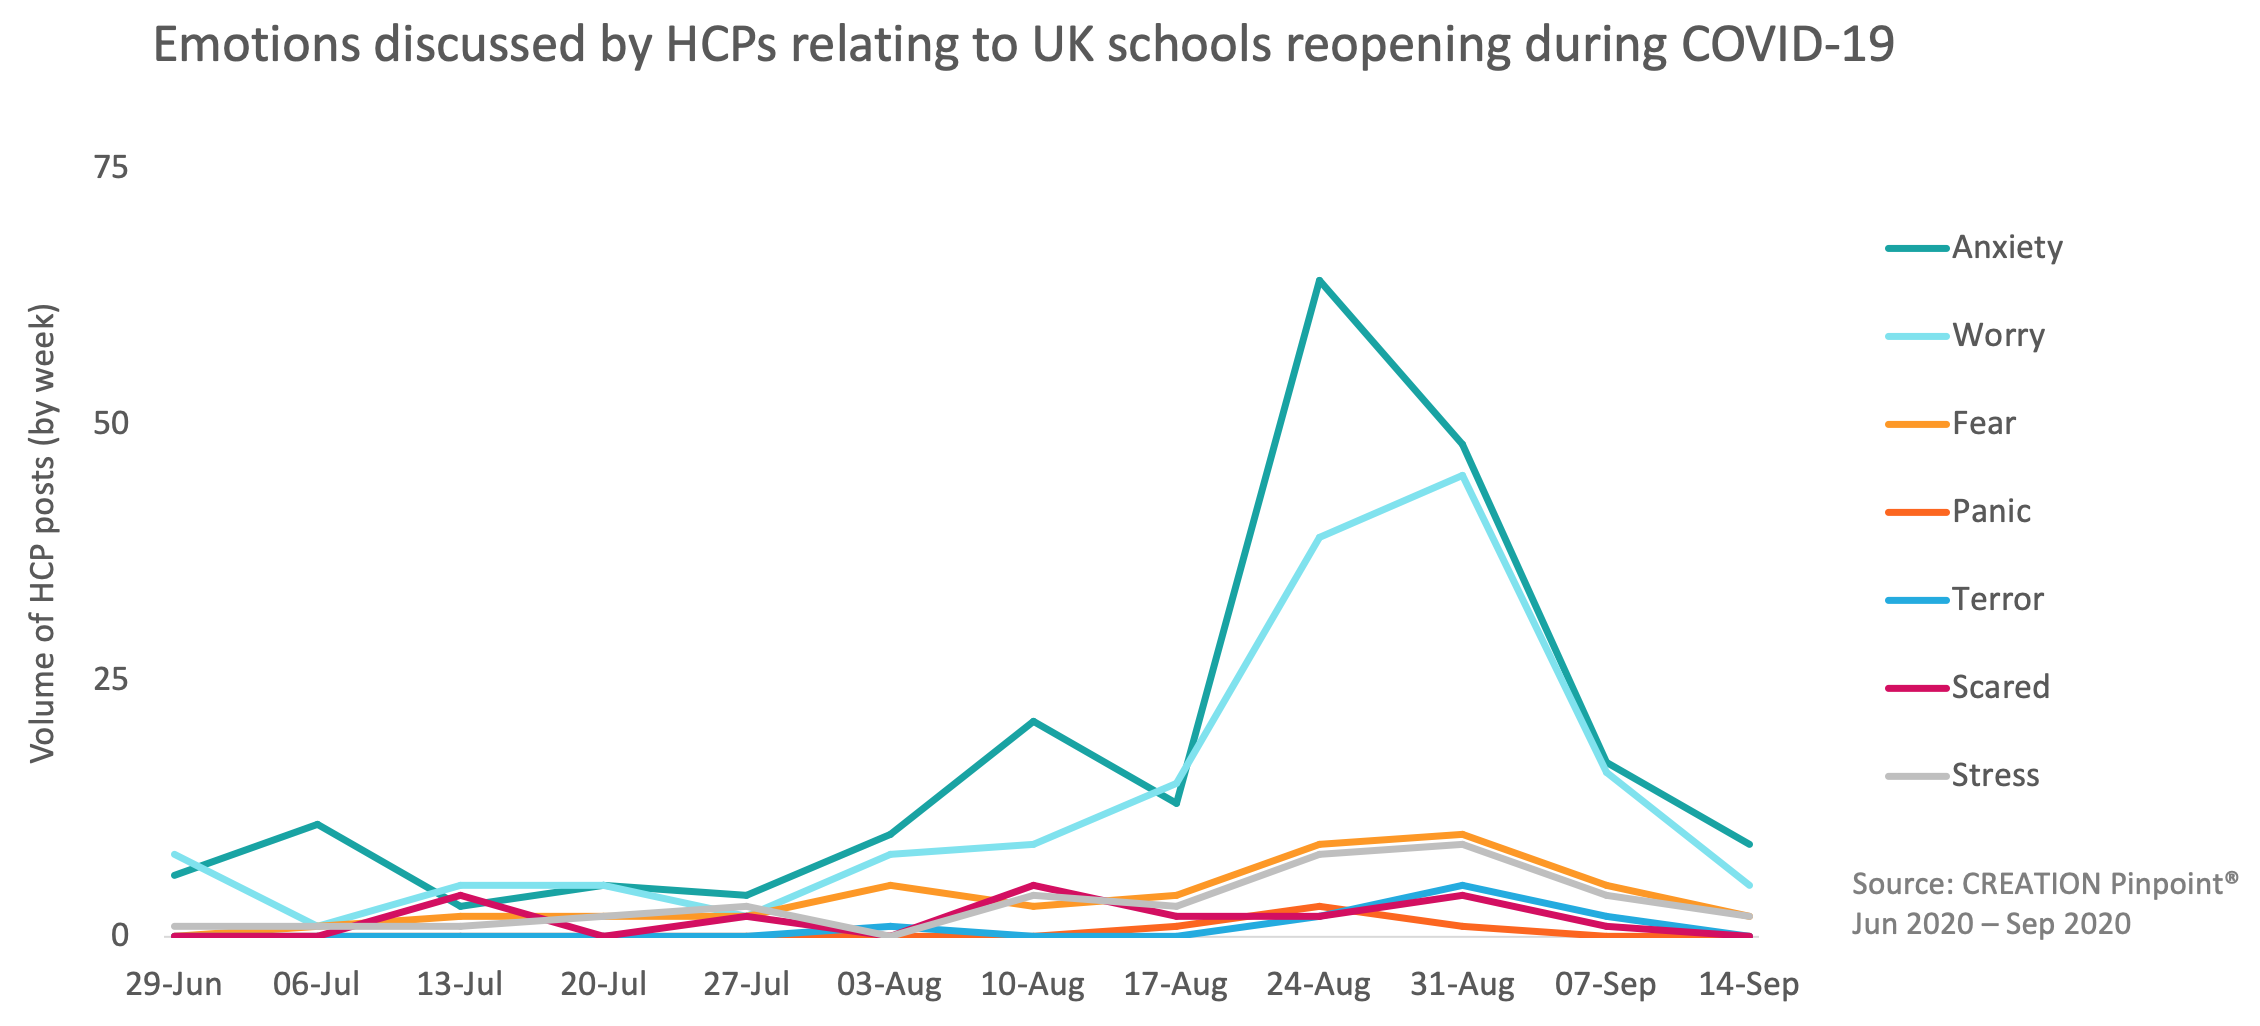 Emotions discussed by HCPs relating to UK schools reopening during COVID-19